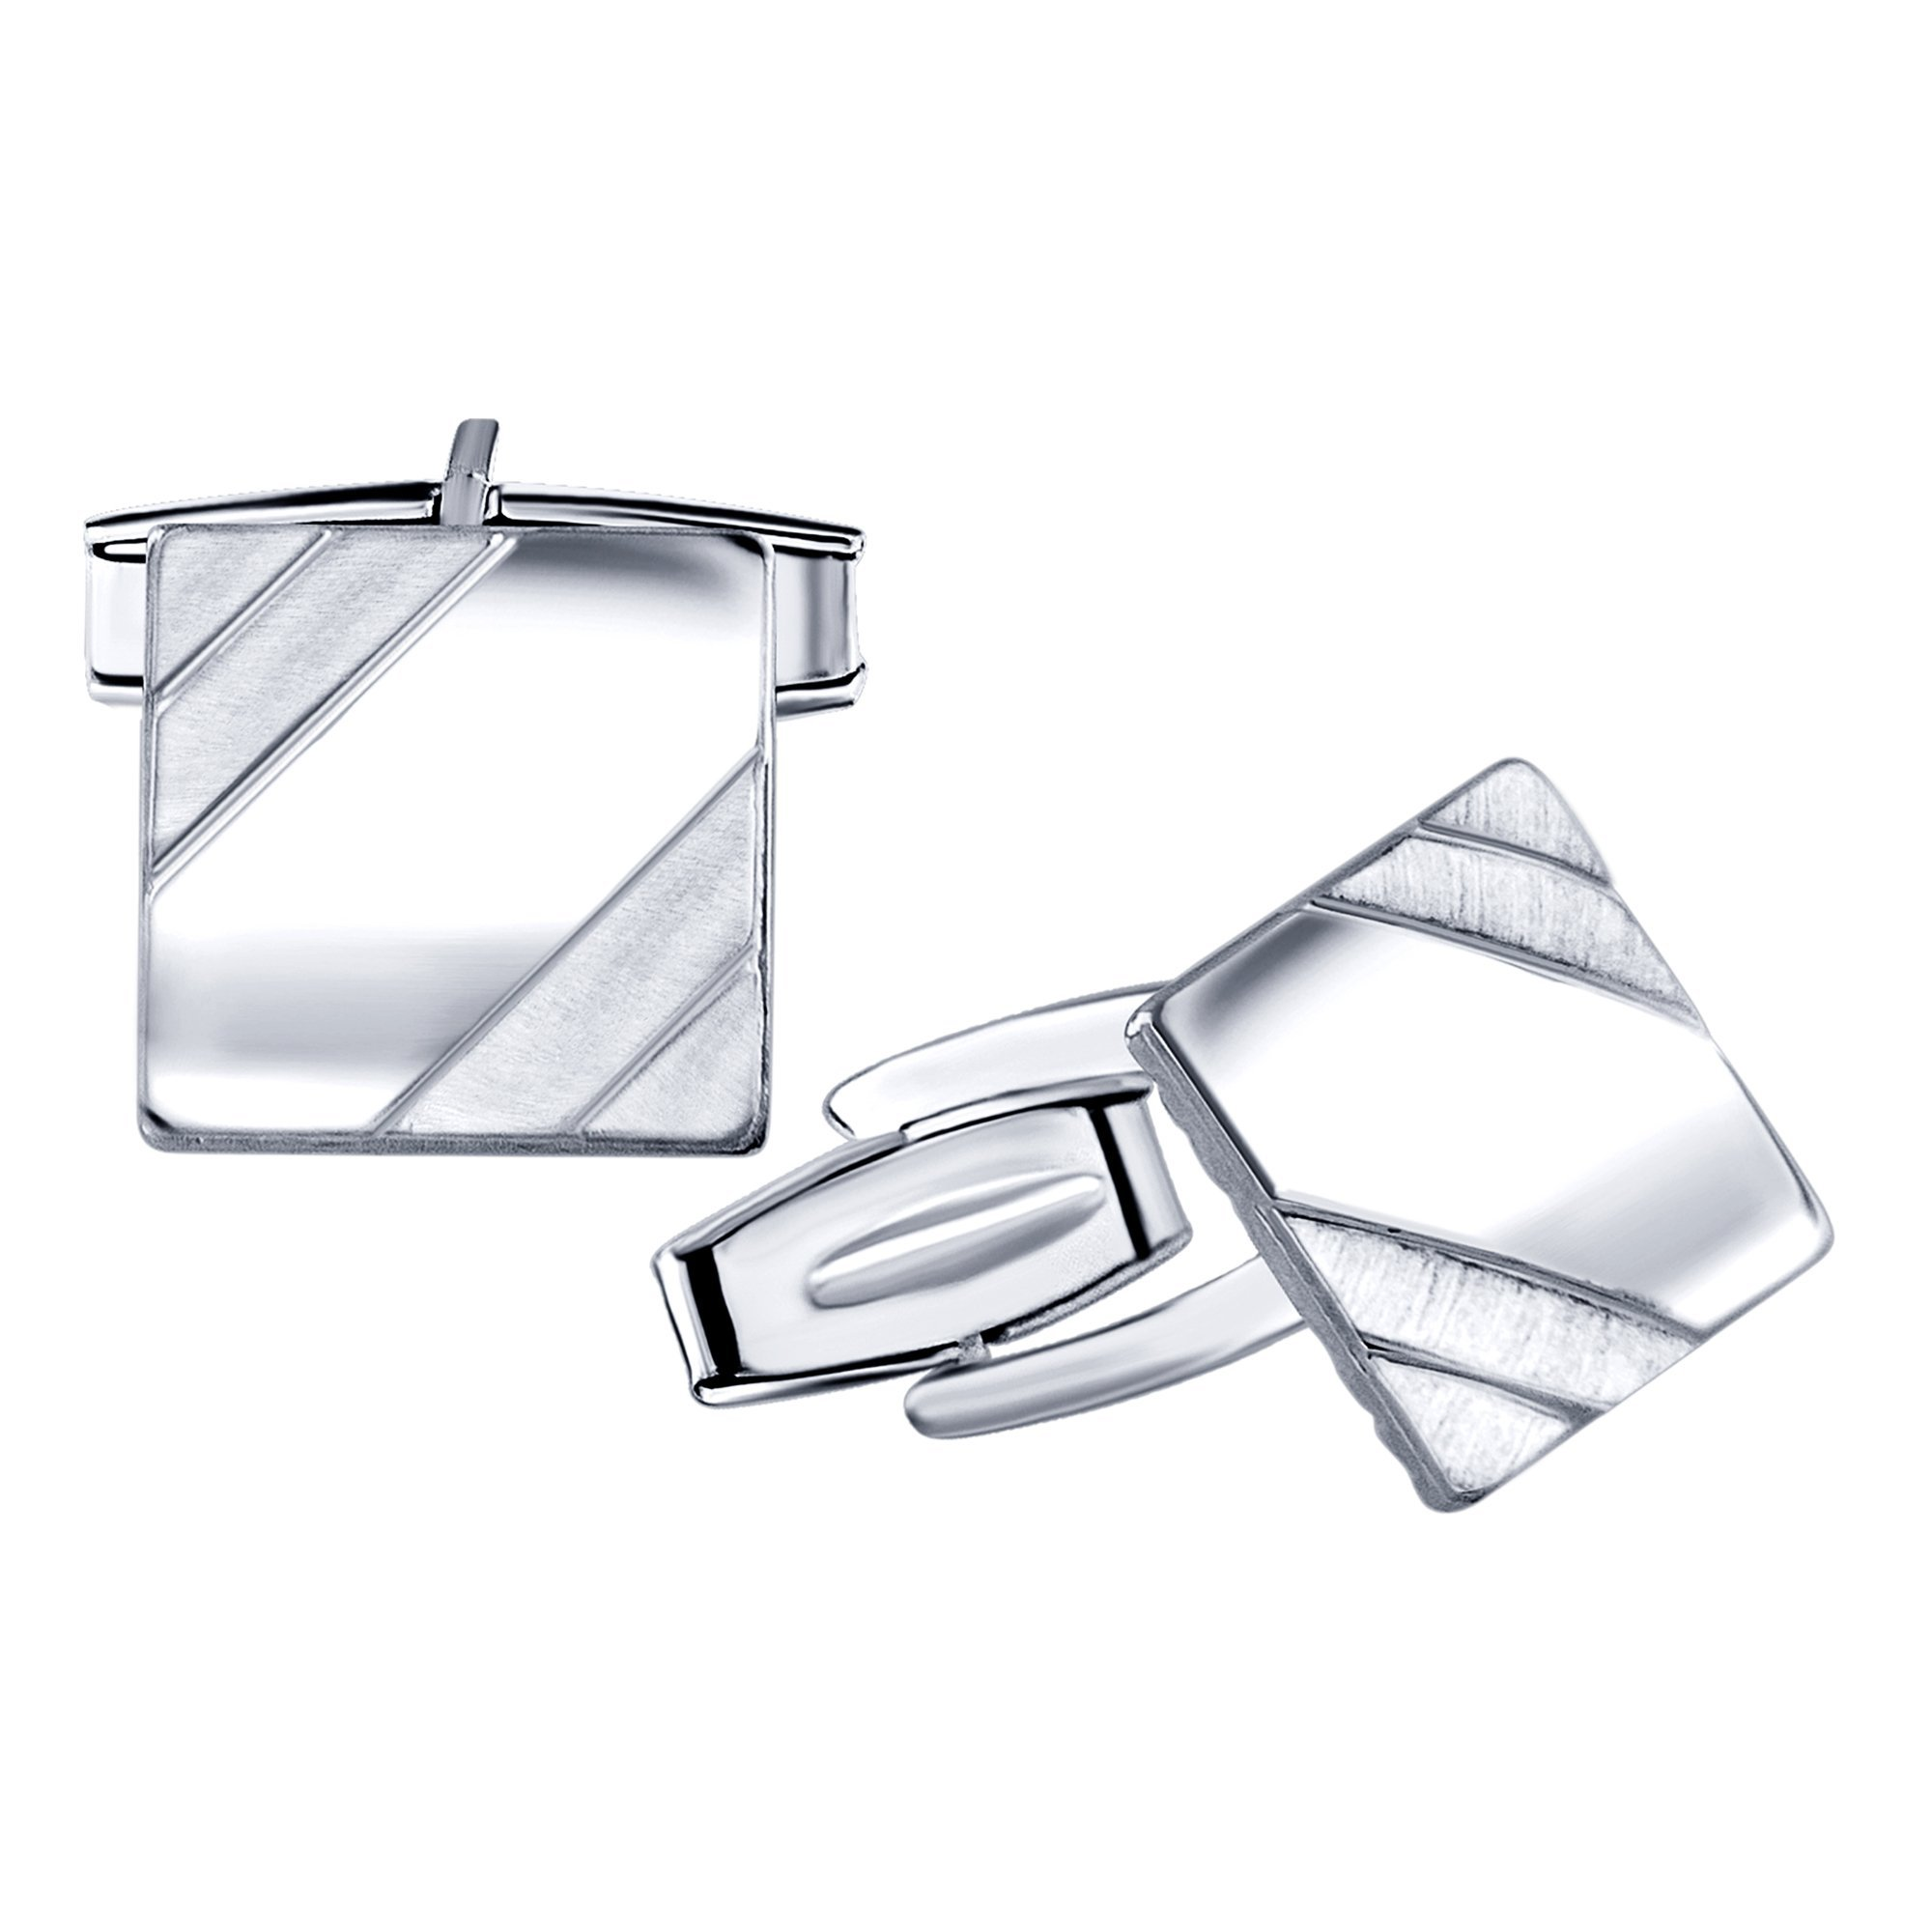 Men's Sterling Silver .925 Square Cufflinks with Satin Finish Accents in Two Corners, Engravable. Made In Italy. 14mm by Sterling Manufacturers (Image #2)